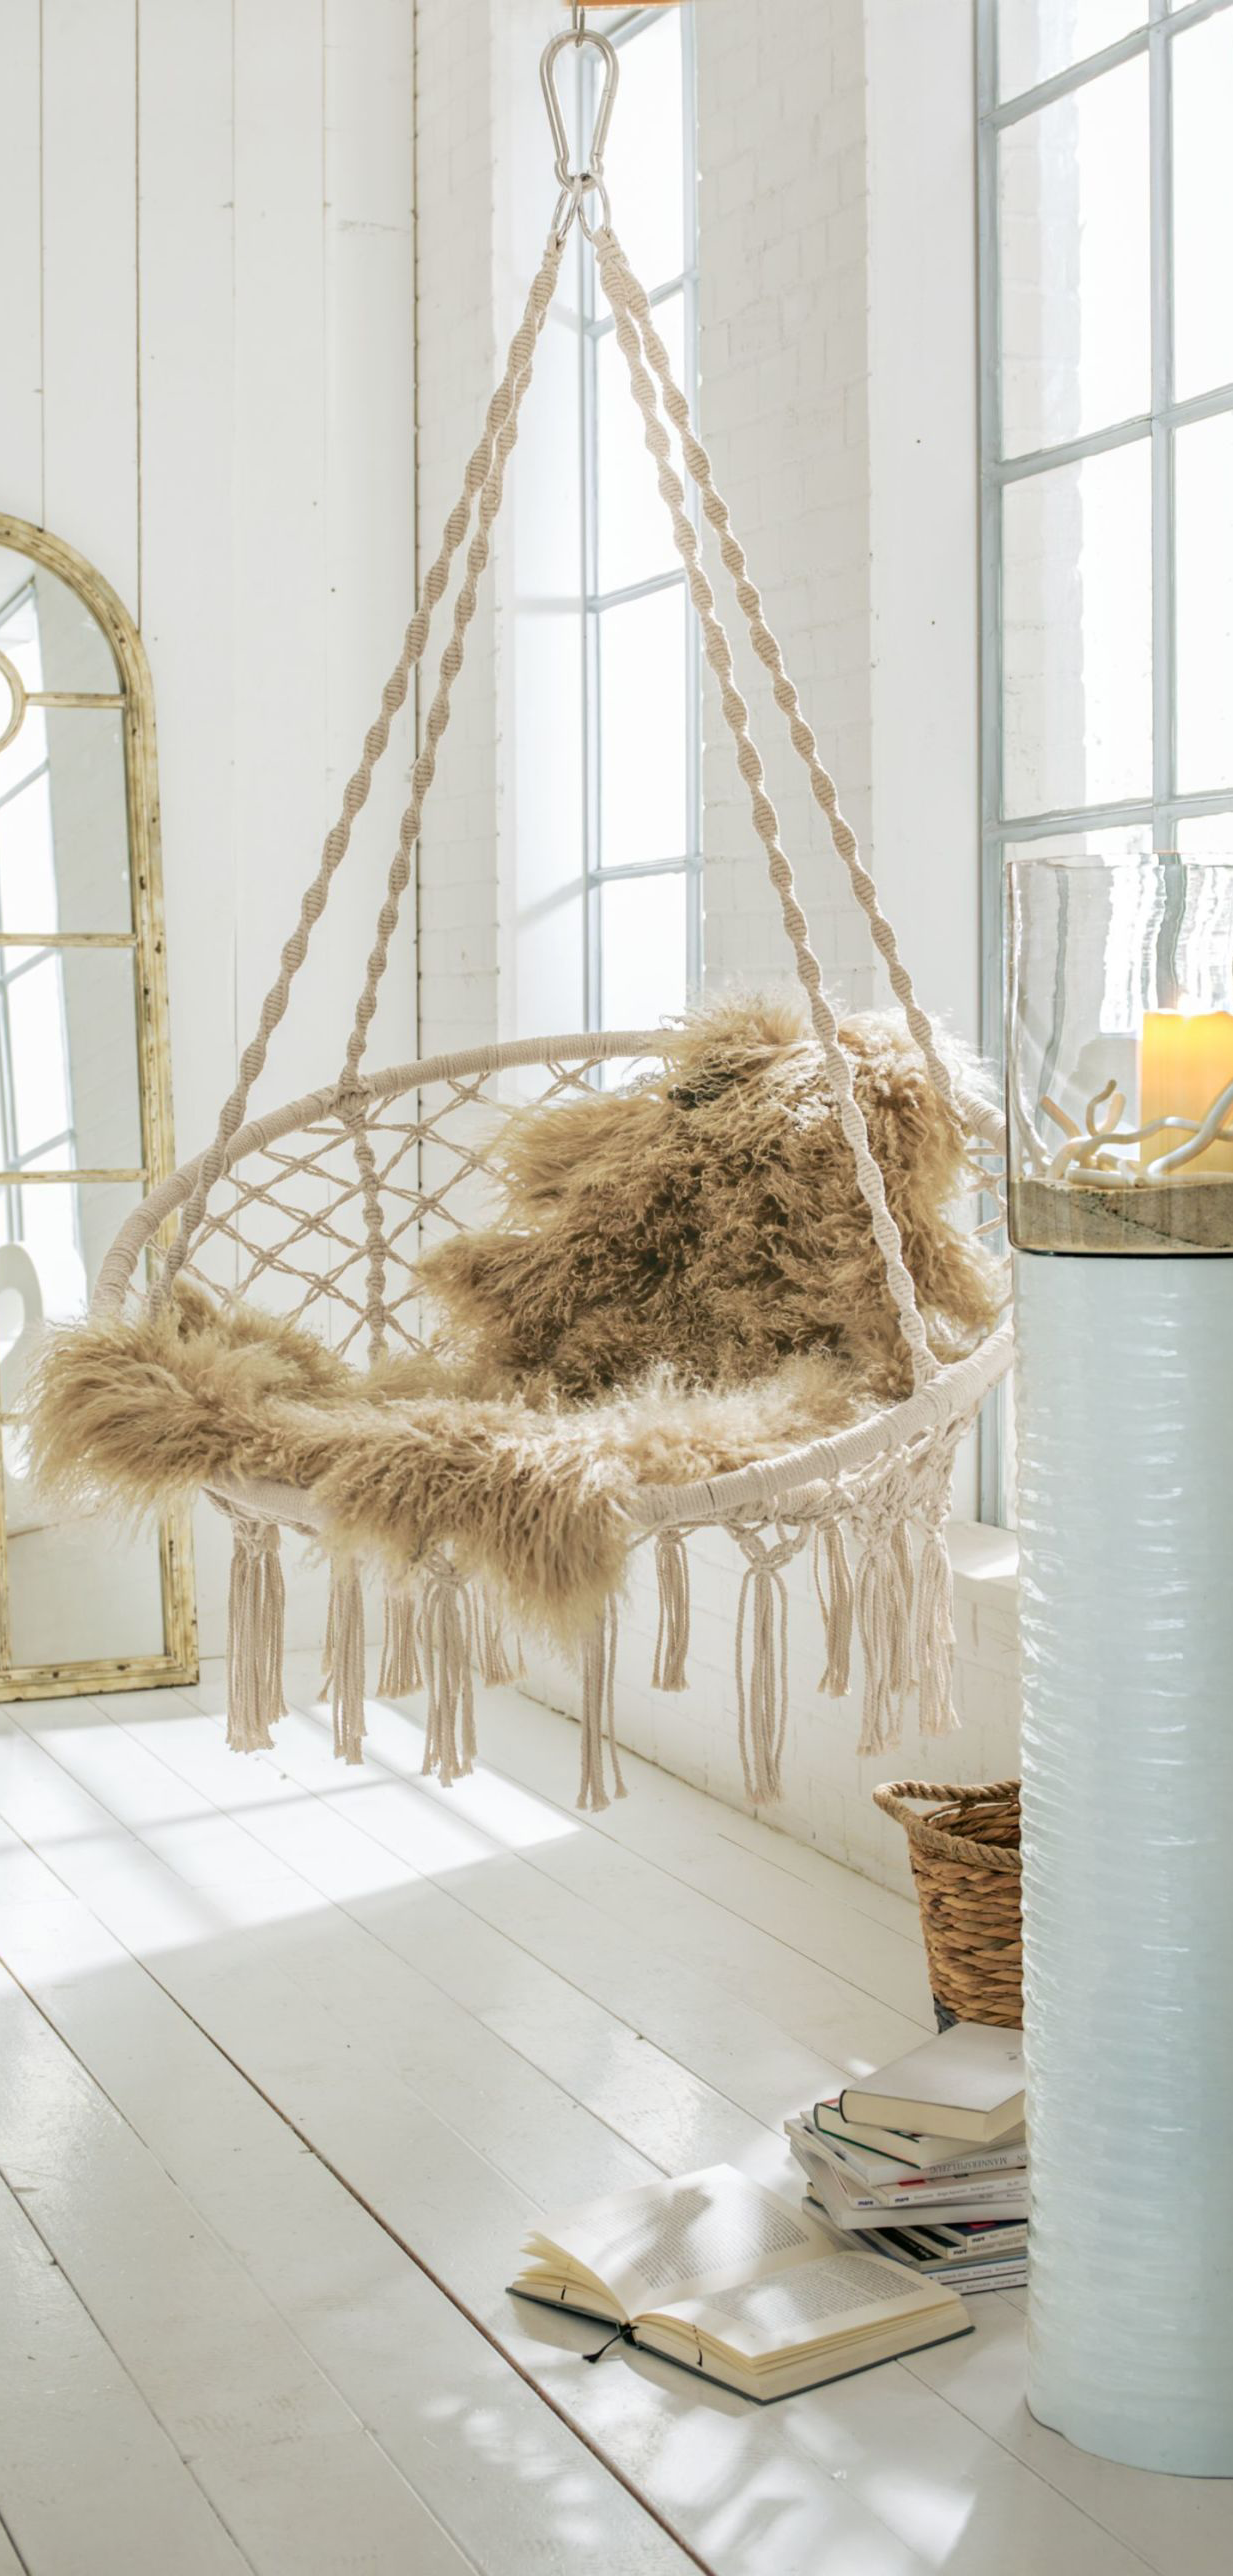 hanging chair home goods panasonic massage chairs round swing with 4 ropes and tassels ideas for the